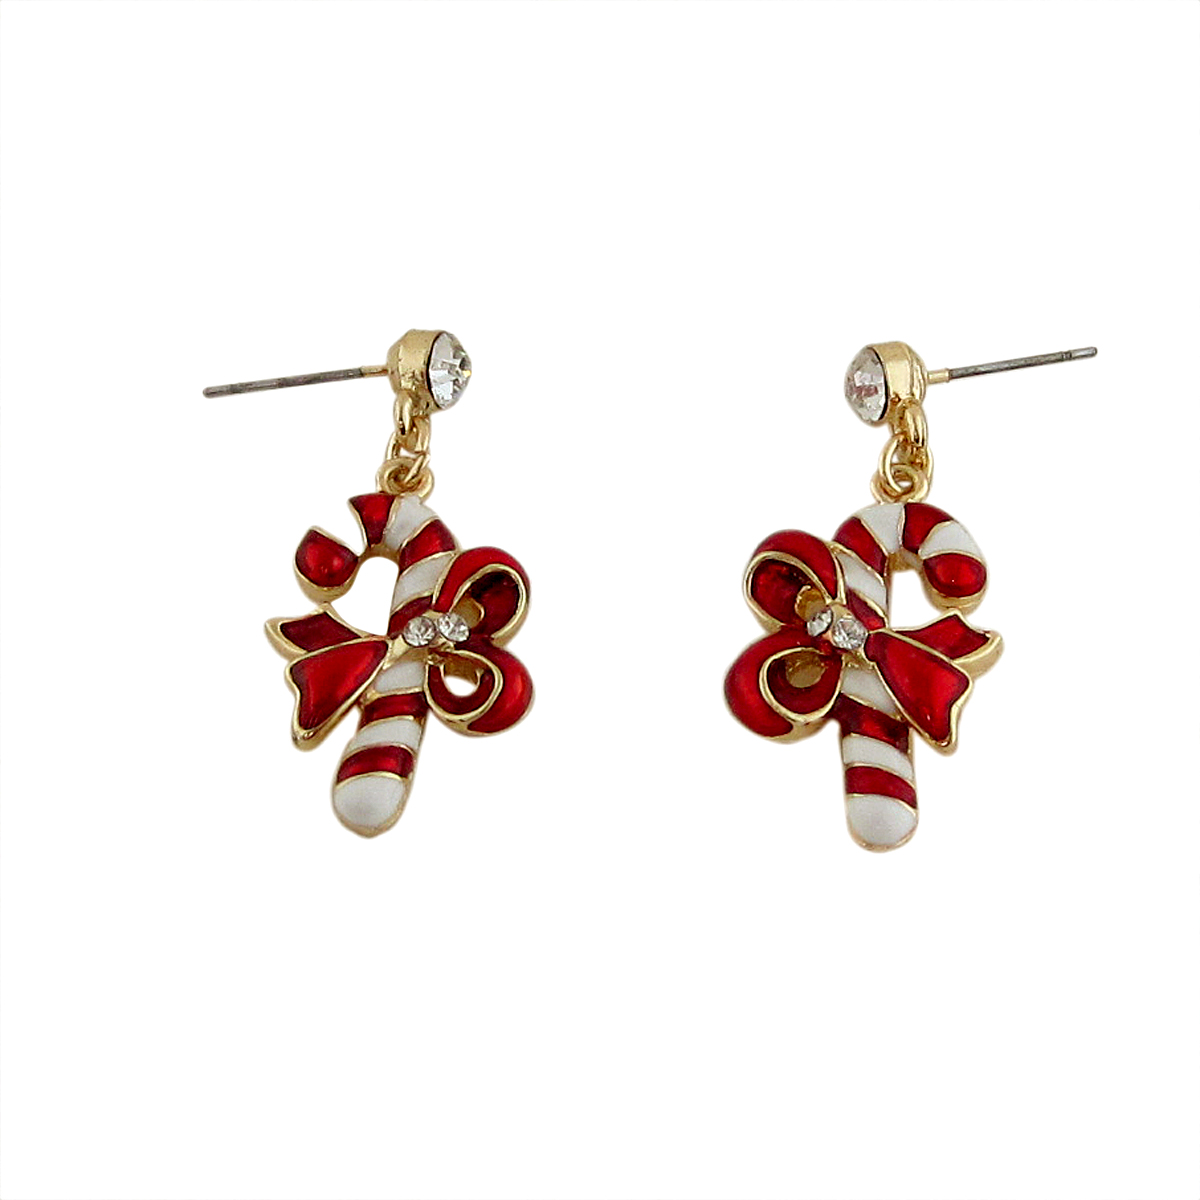 And Of Course, Whats The Holidays Season Without Some Yummy Candy Canes?! Candy  Cane Earrings That Is! We All Look Forward To The Holidays,